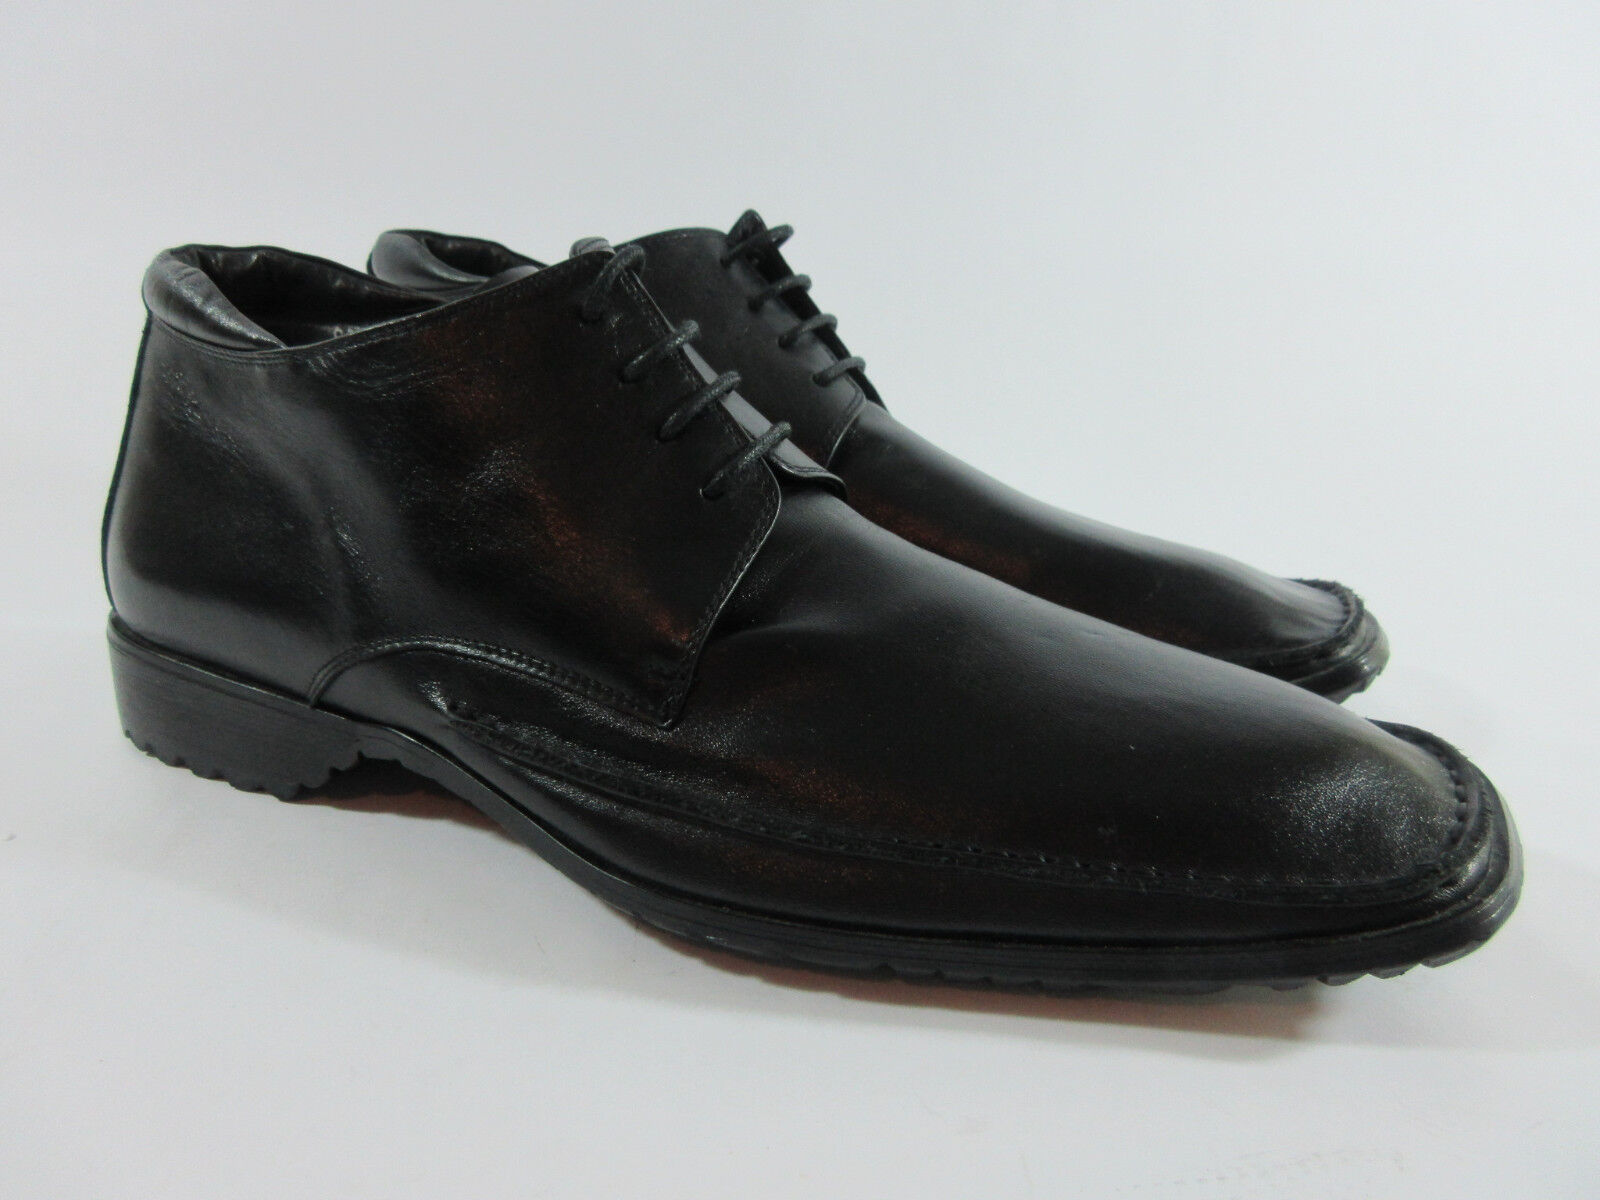 Escoda Mens Size 44 Oxfords Handmade Black Leather Lace Up Side Zip shoes